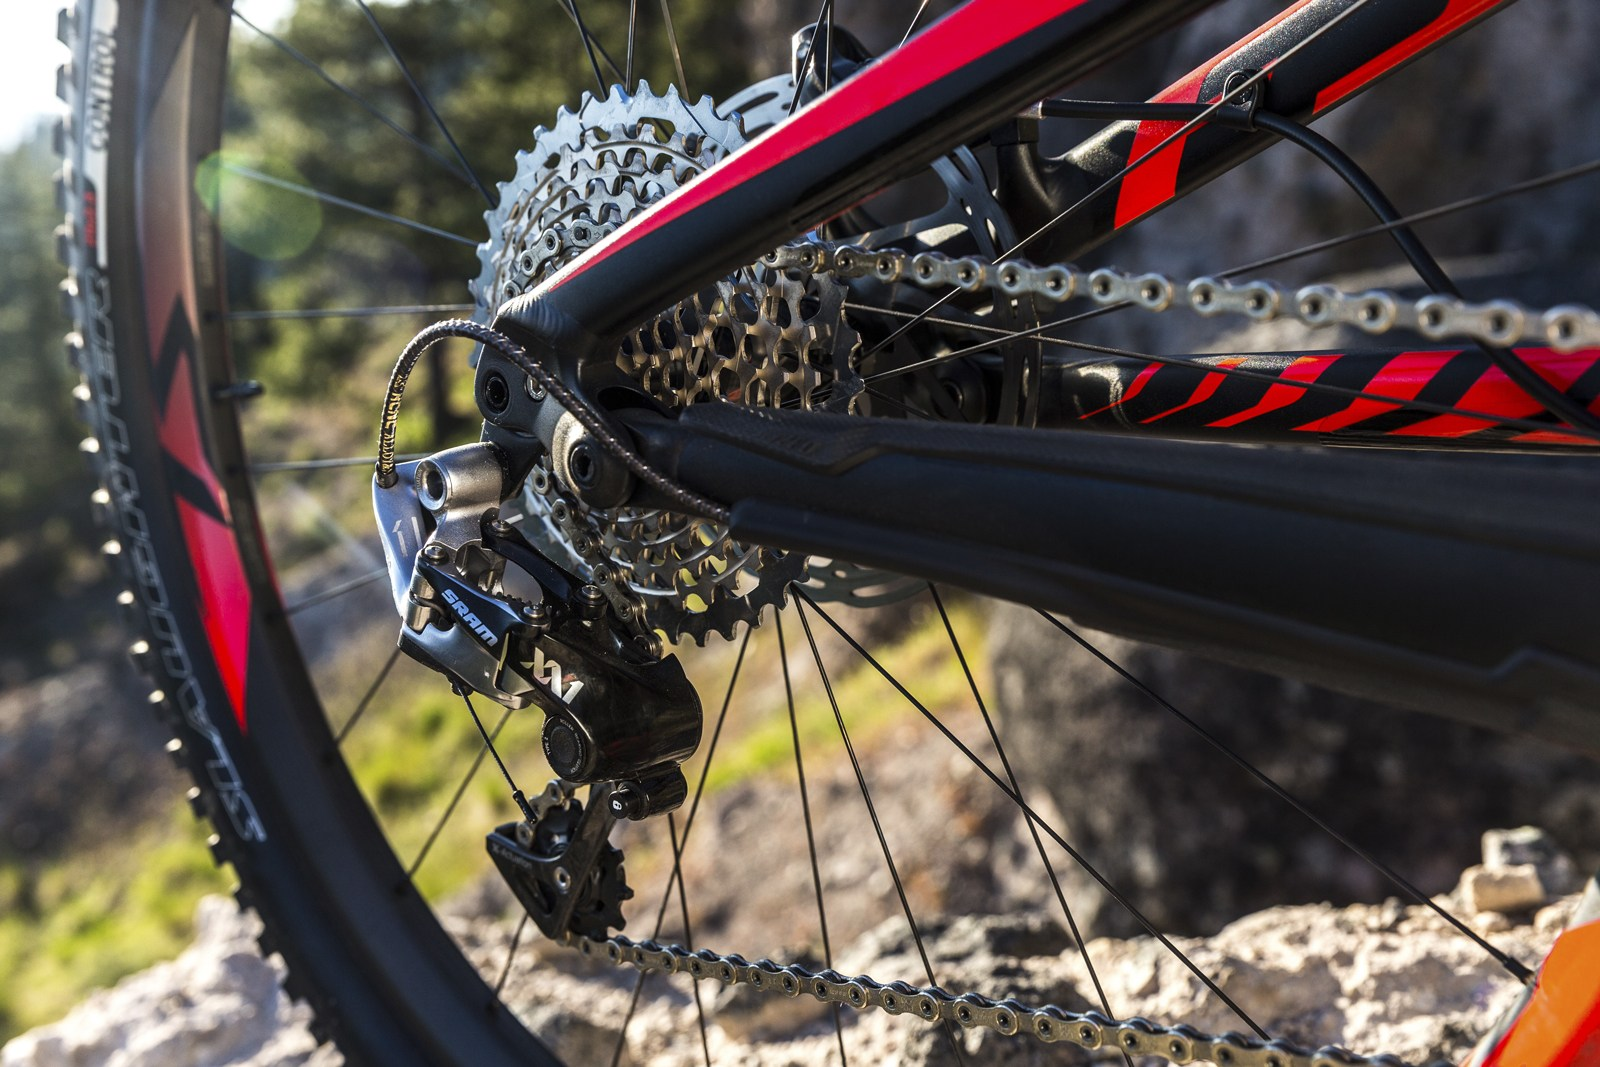 2015 Specialized Enduro 650b and 29